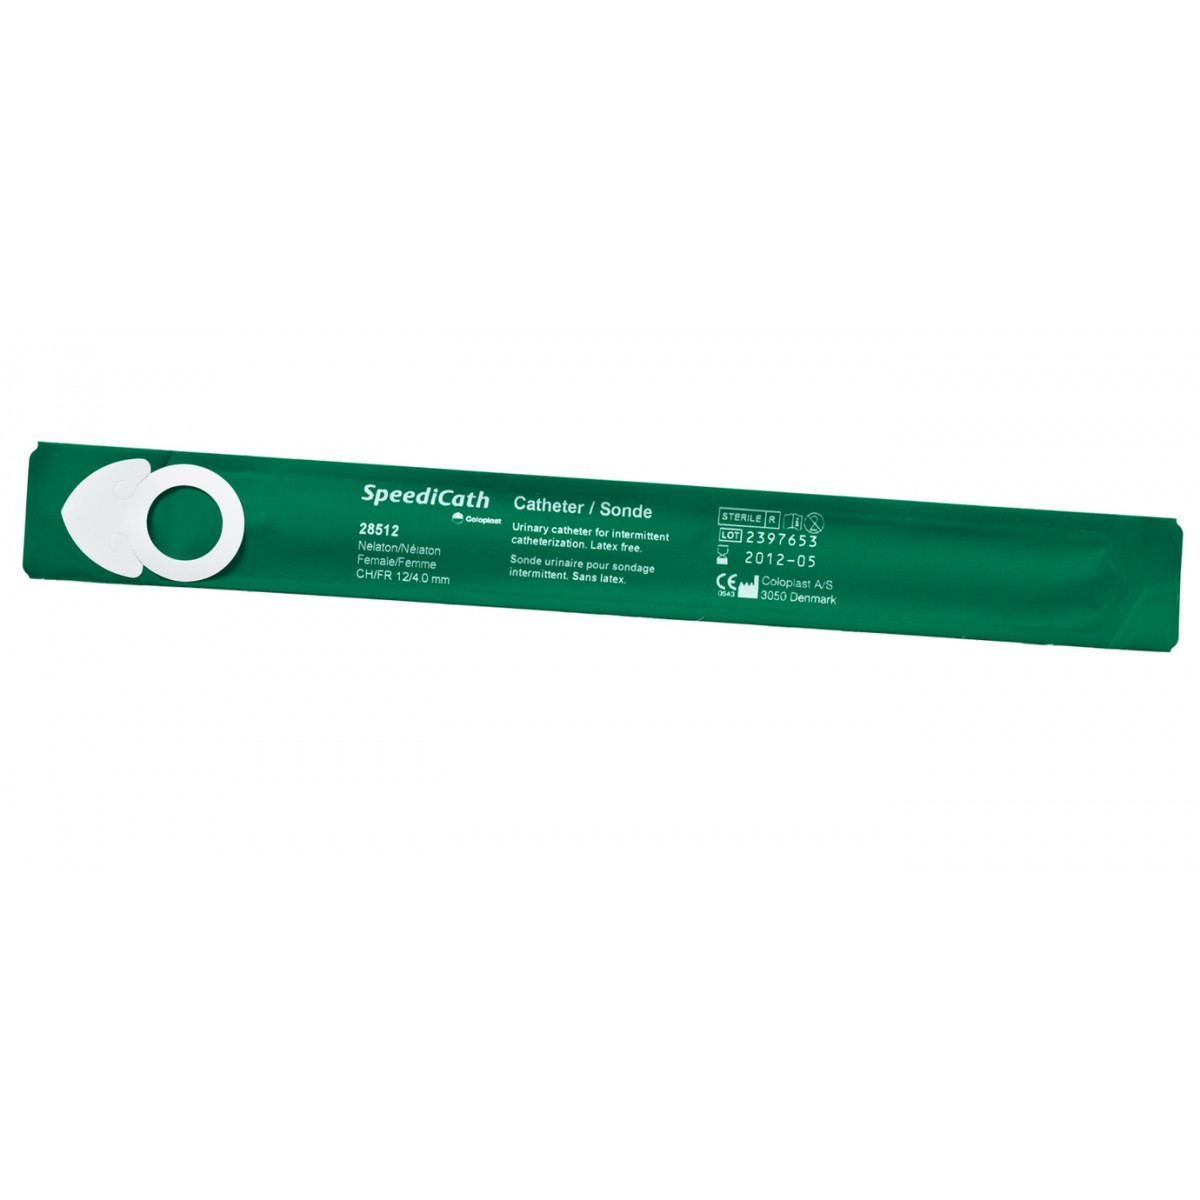 CATETER URINARIO LUBRIF SPEEDICATH FEM CH06 28506 - (COLOPLAST DO BRASIL)